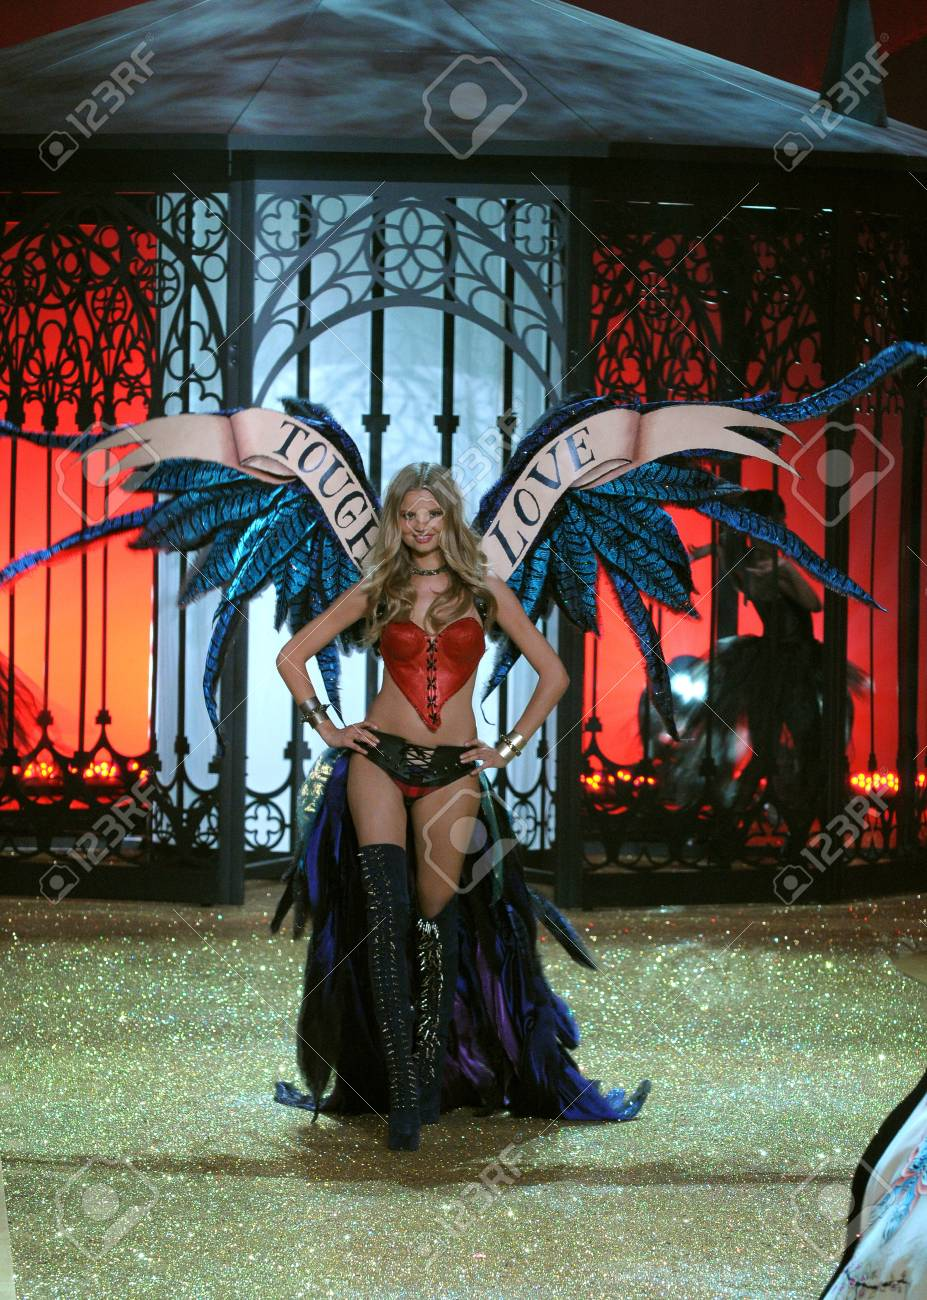 NEW YORK - NOVEMBER 10: Victoria's Secret Fashion Show model walks the runway during the 2010 Victoria's Secret Fashion Show on November 10, 2010 at the Lexington Armory in New York City.  Stock Photo - 18432080